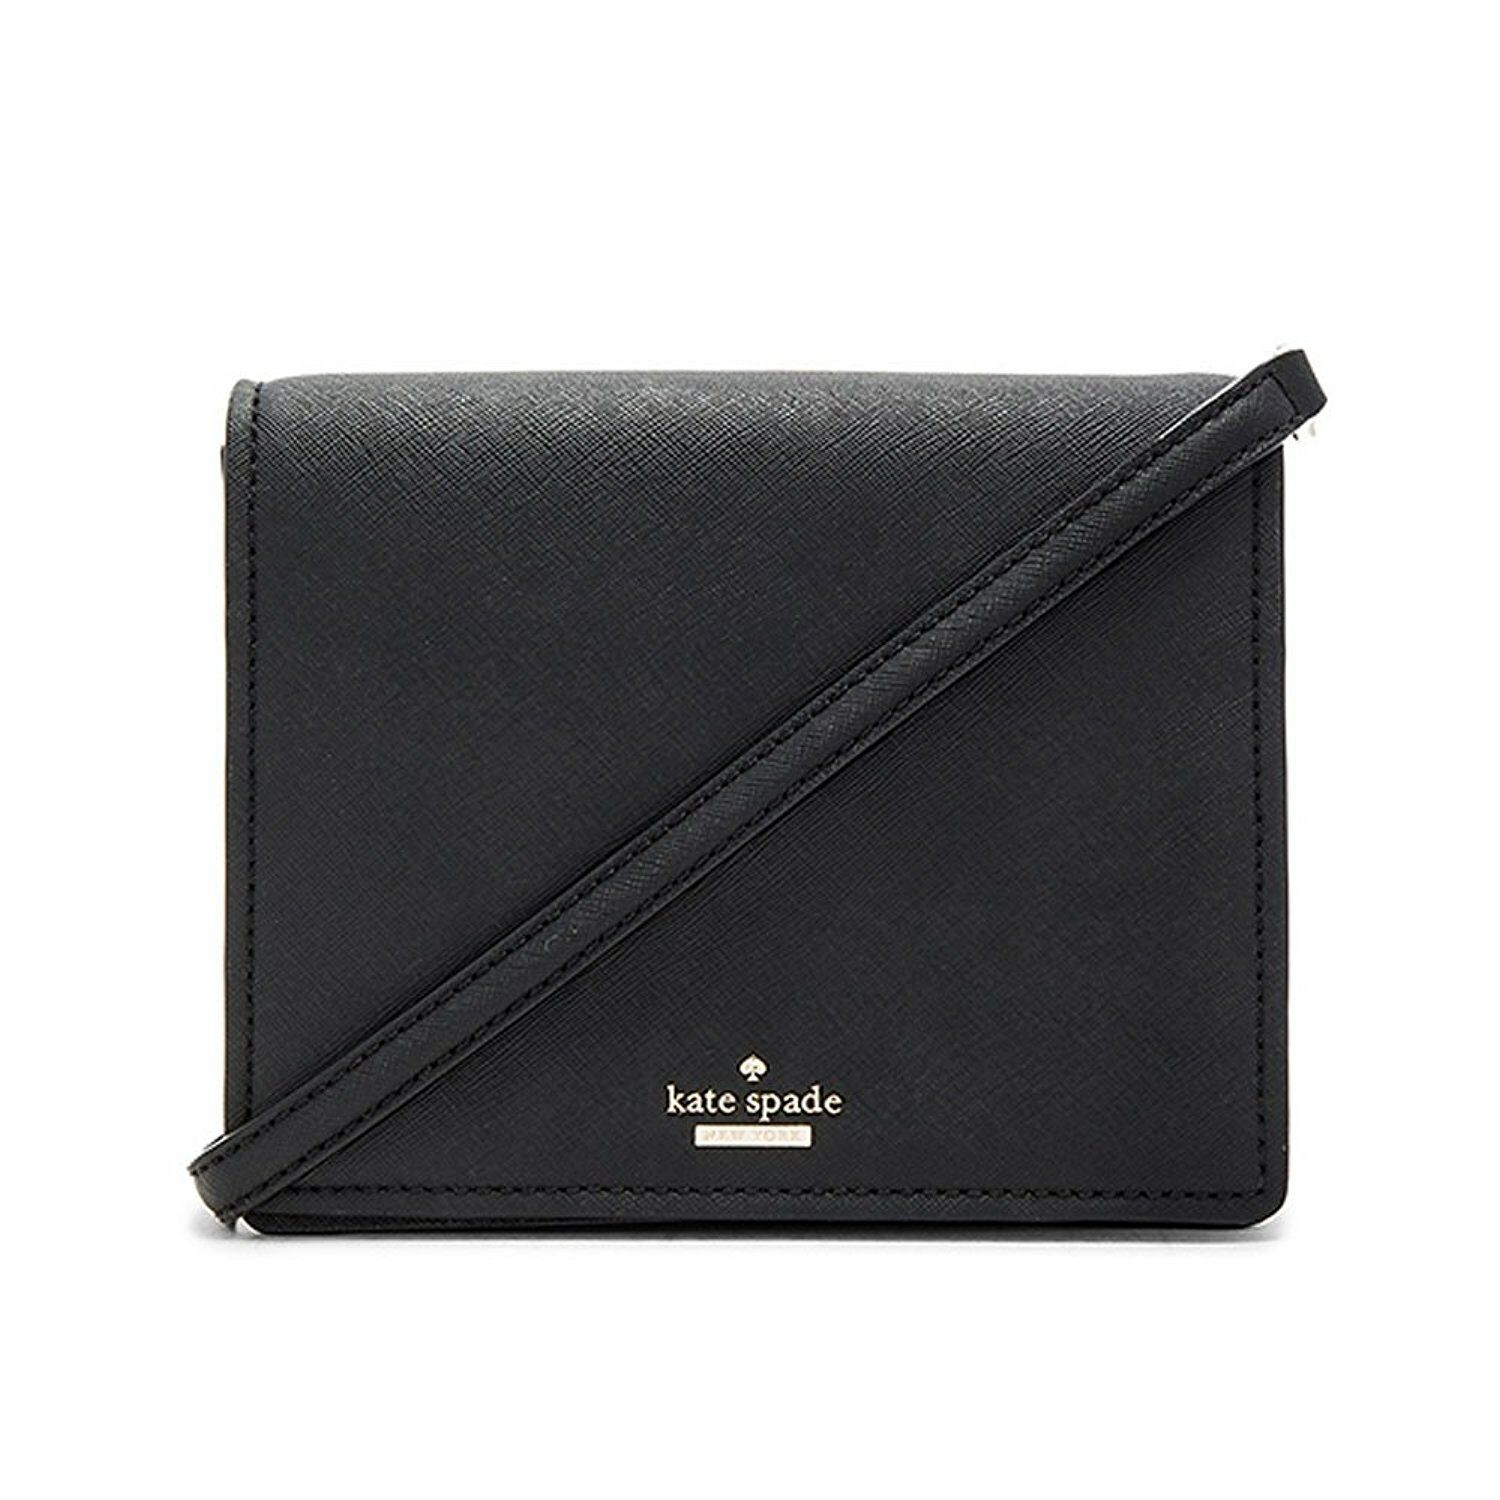 Kate Spade Cameron Street Small Dody Black Crossbody